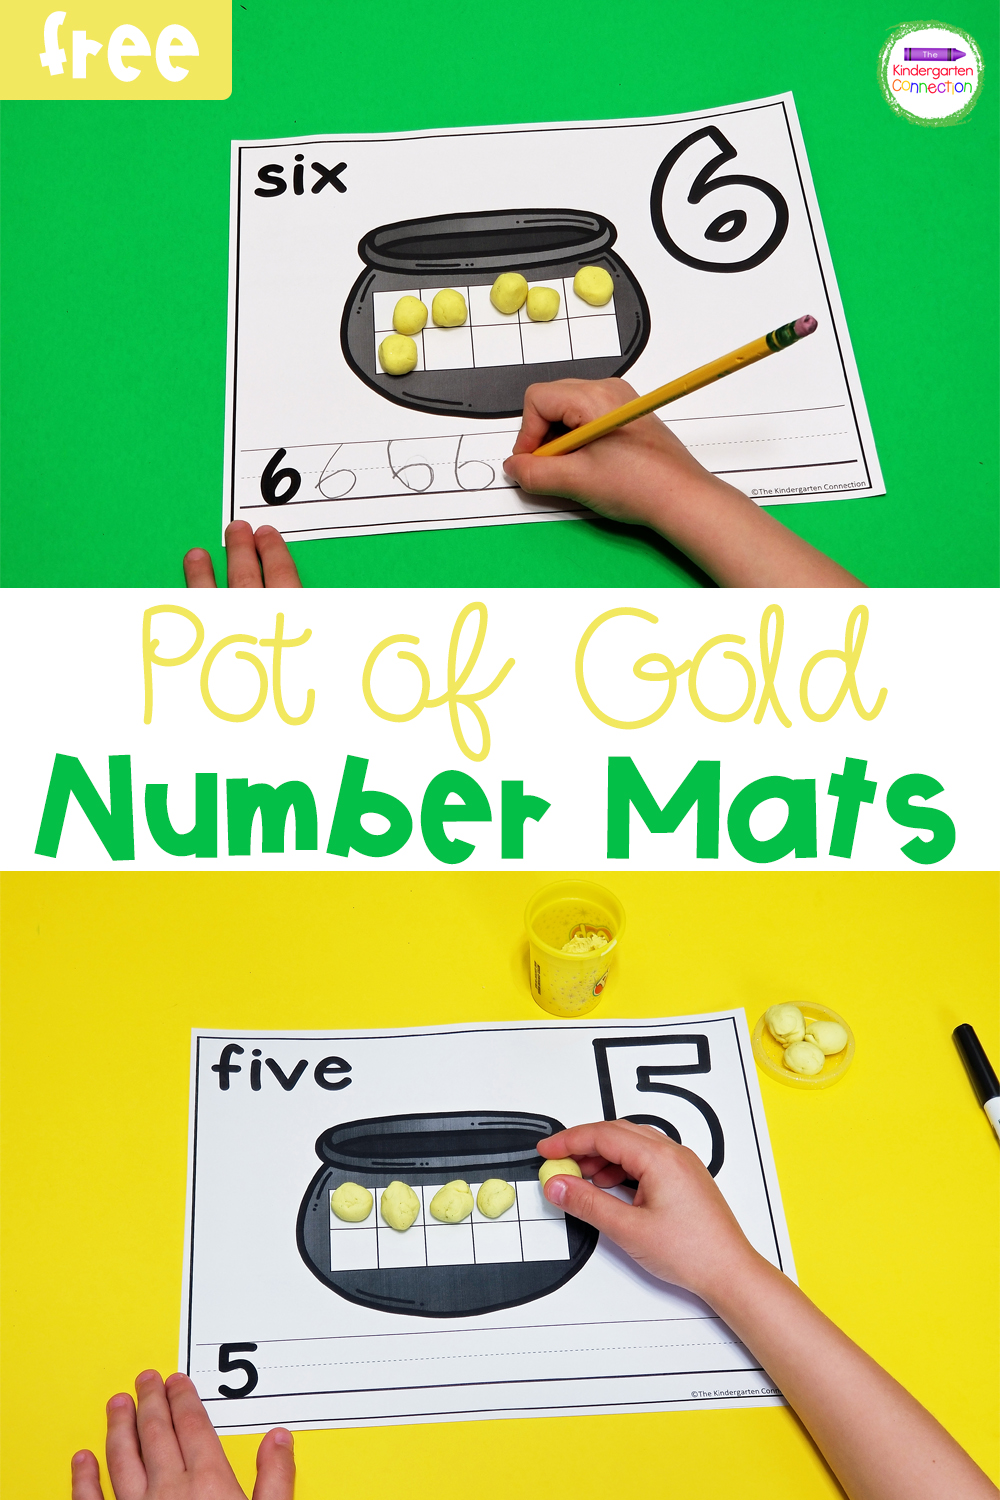 These free Pot of Gold Number Mats are perfect for working on numbers and counting in a fun, hands-on way this St. Patrick's Day!